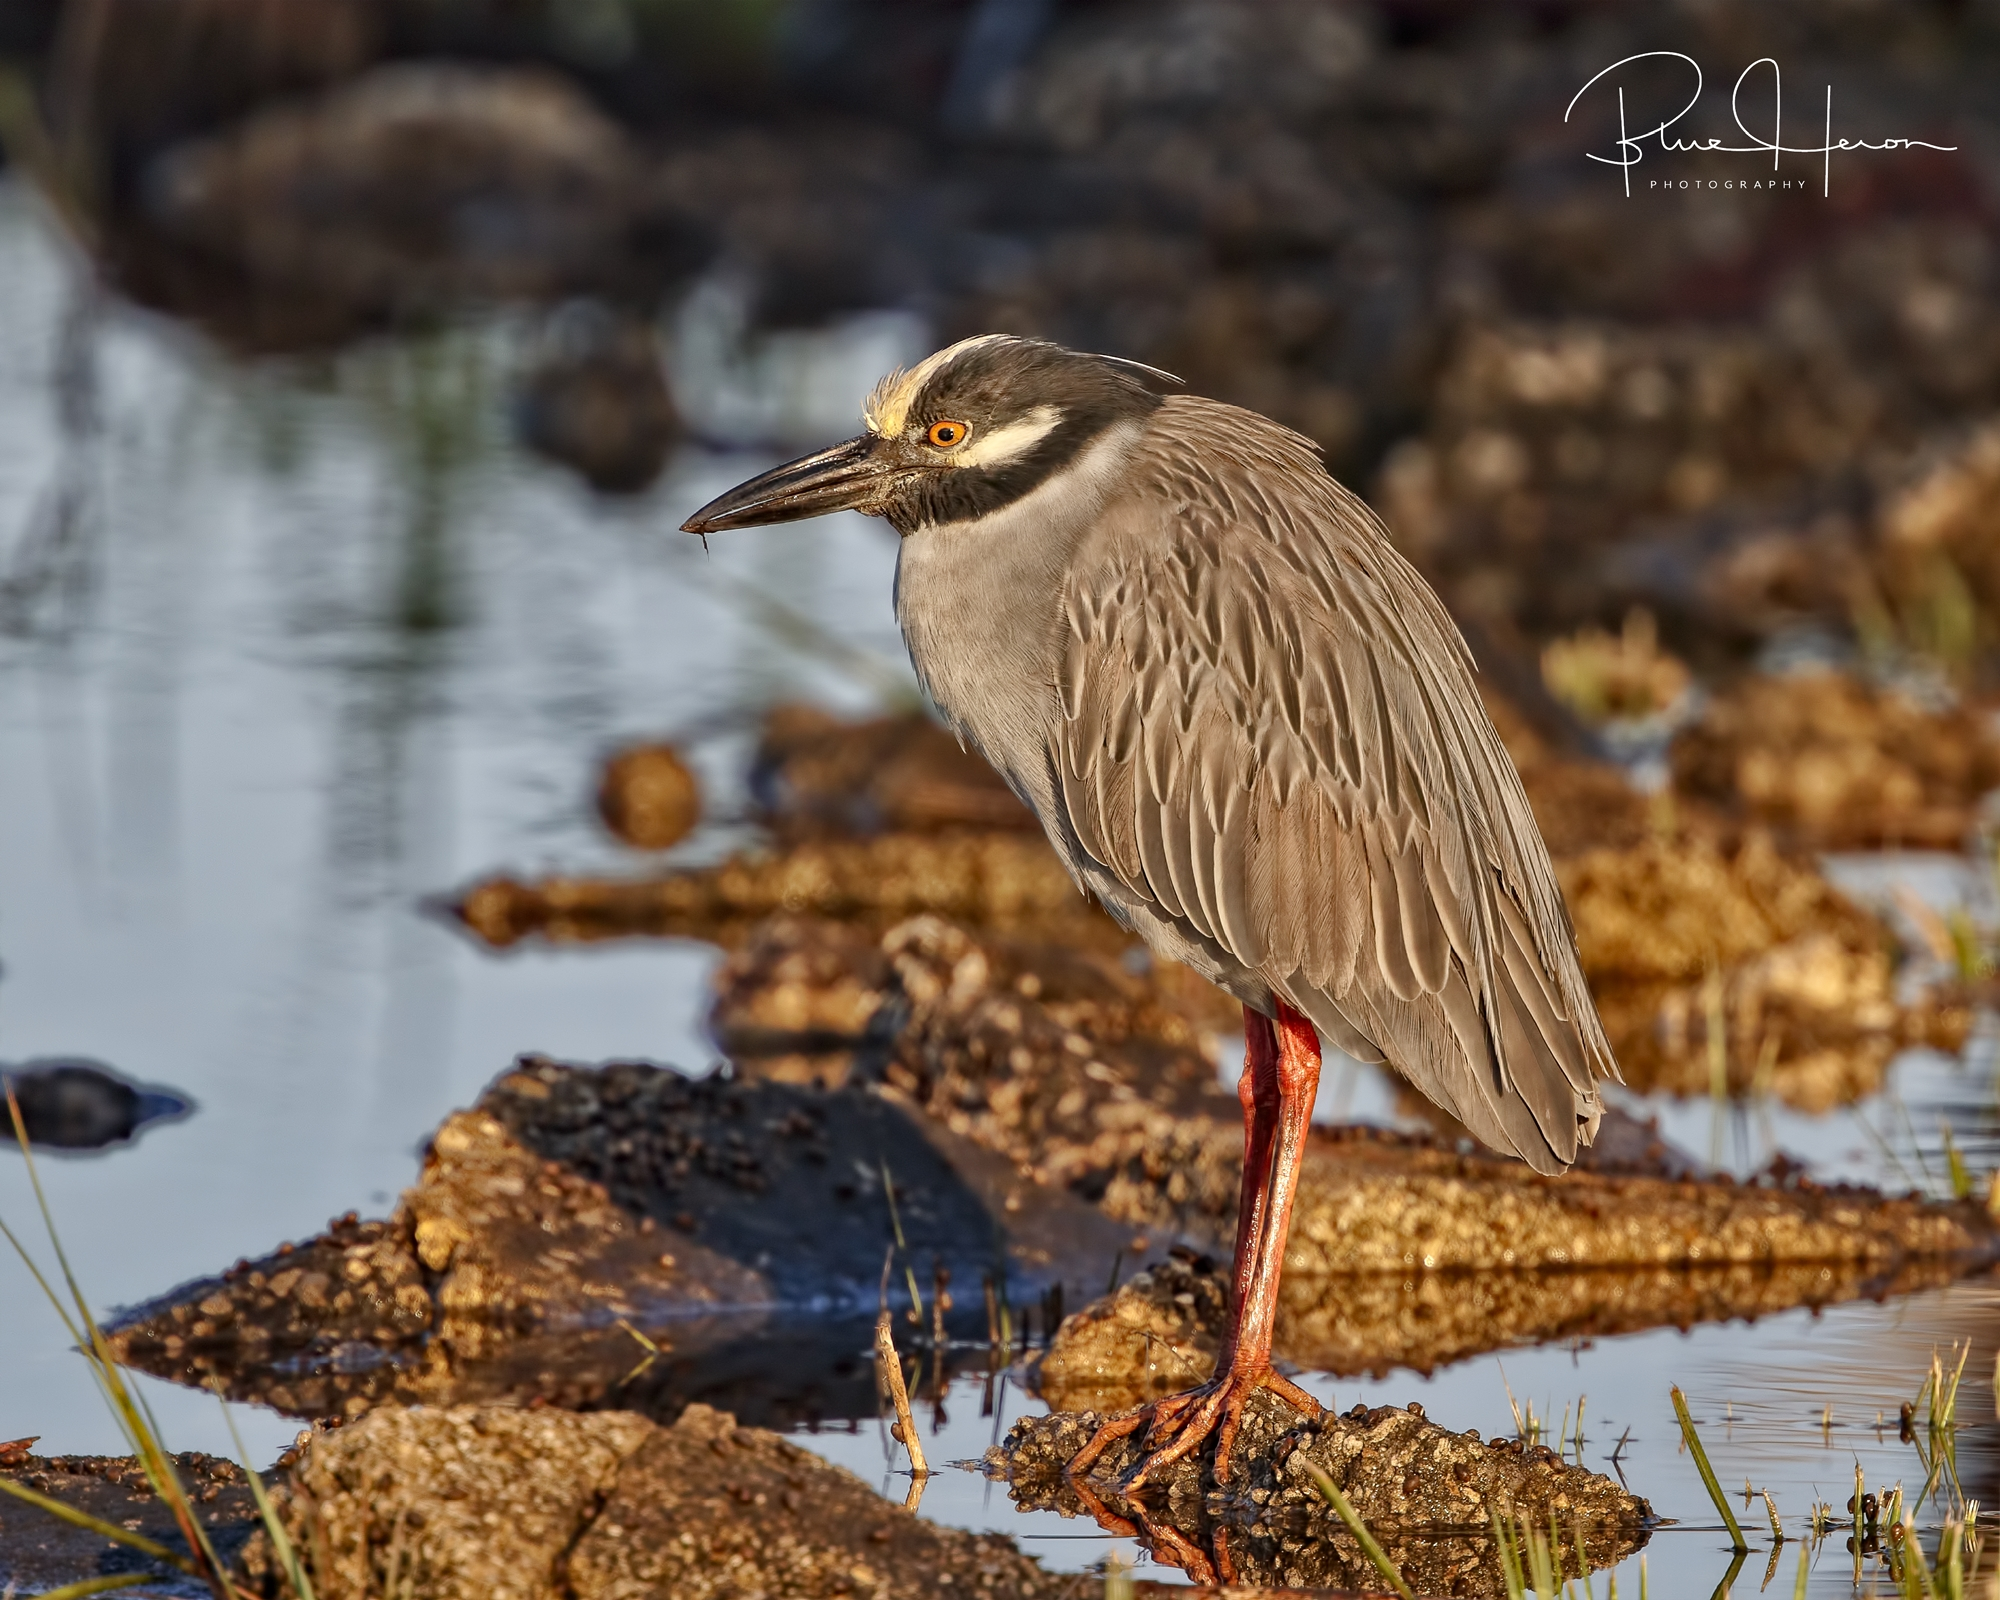 George, the Yellow-crowned Night Heron retuned for a visit...his mate should arrive soon too